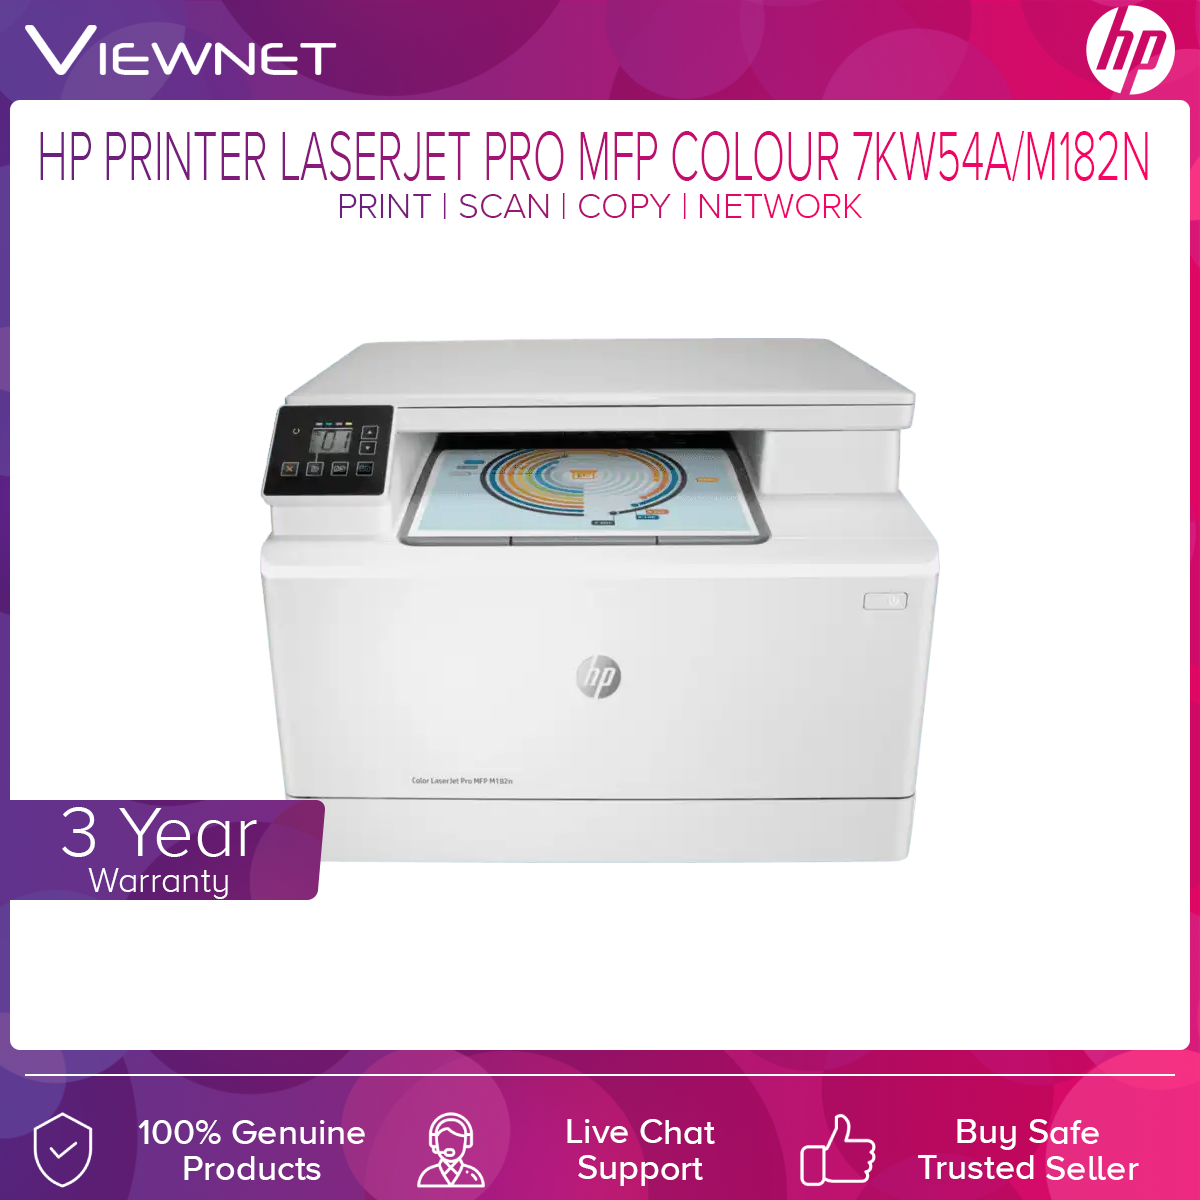 HP COLOR LASERJET PRO MFP M182N PRINT SCAN COPY NETWORK 3 Years Onsite Warranty with 1-to-1 Unit exchange **NEED TO ONLINE REGISTER**